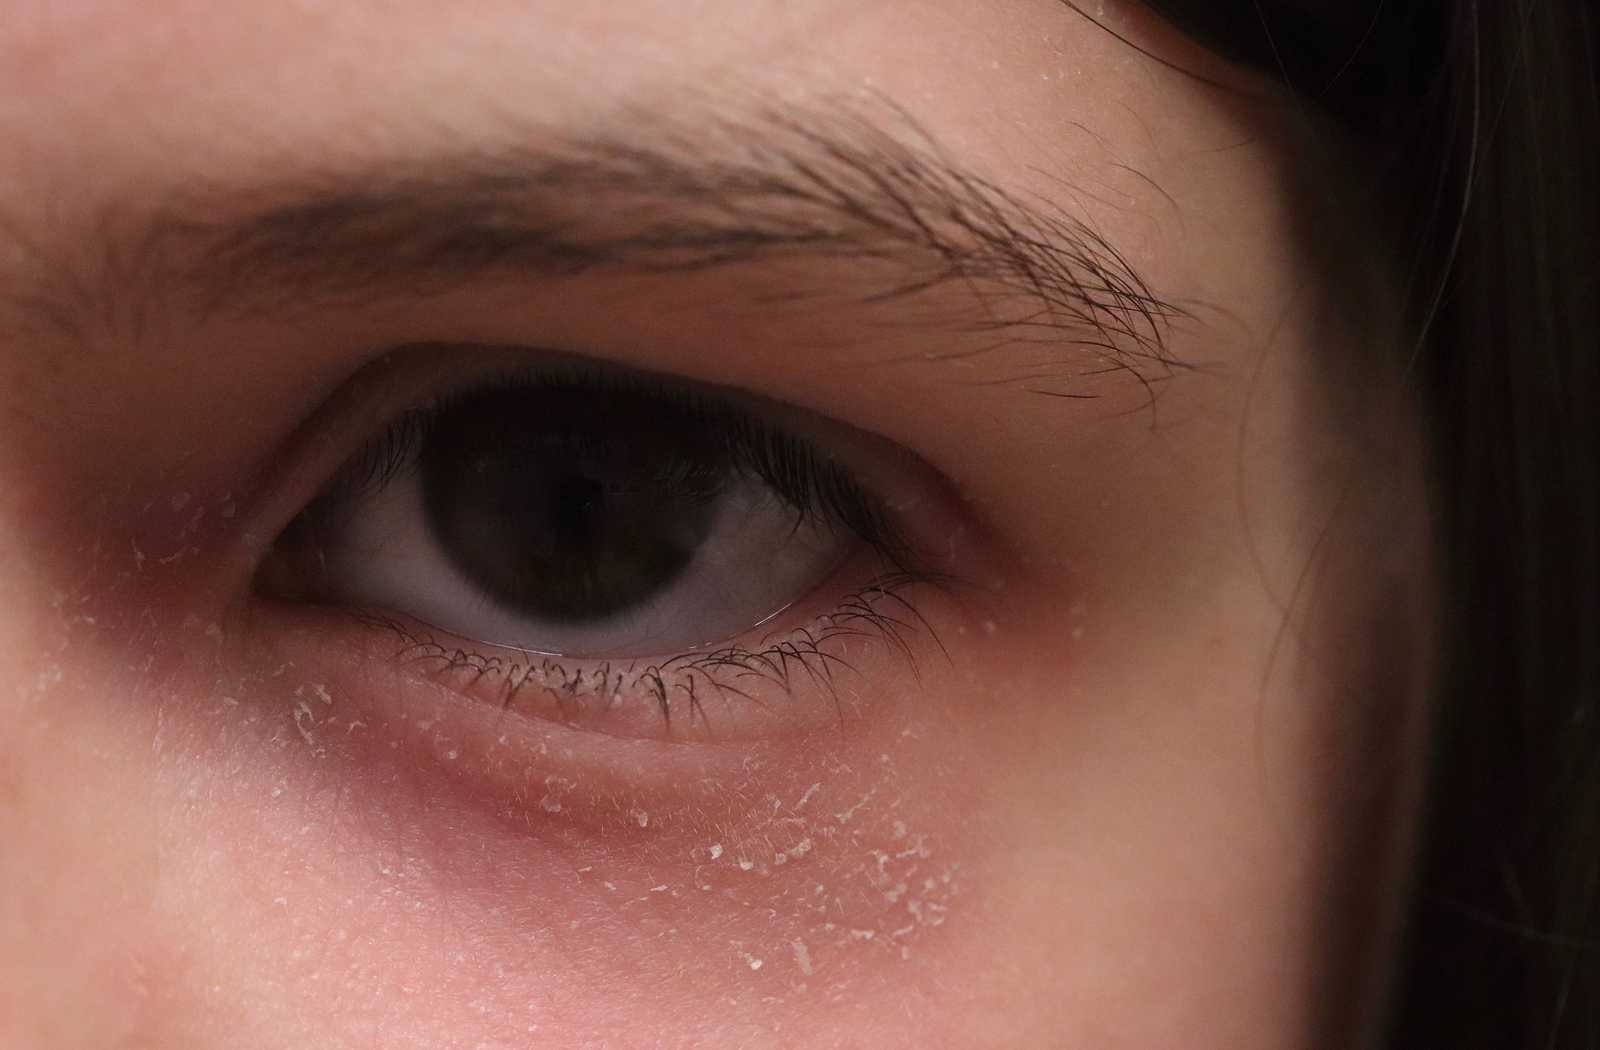 closeup of young woman with dry flaky eyelids in low lighting